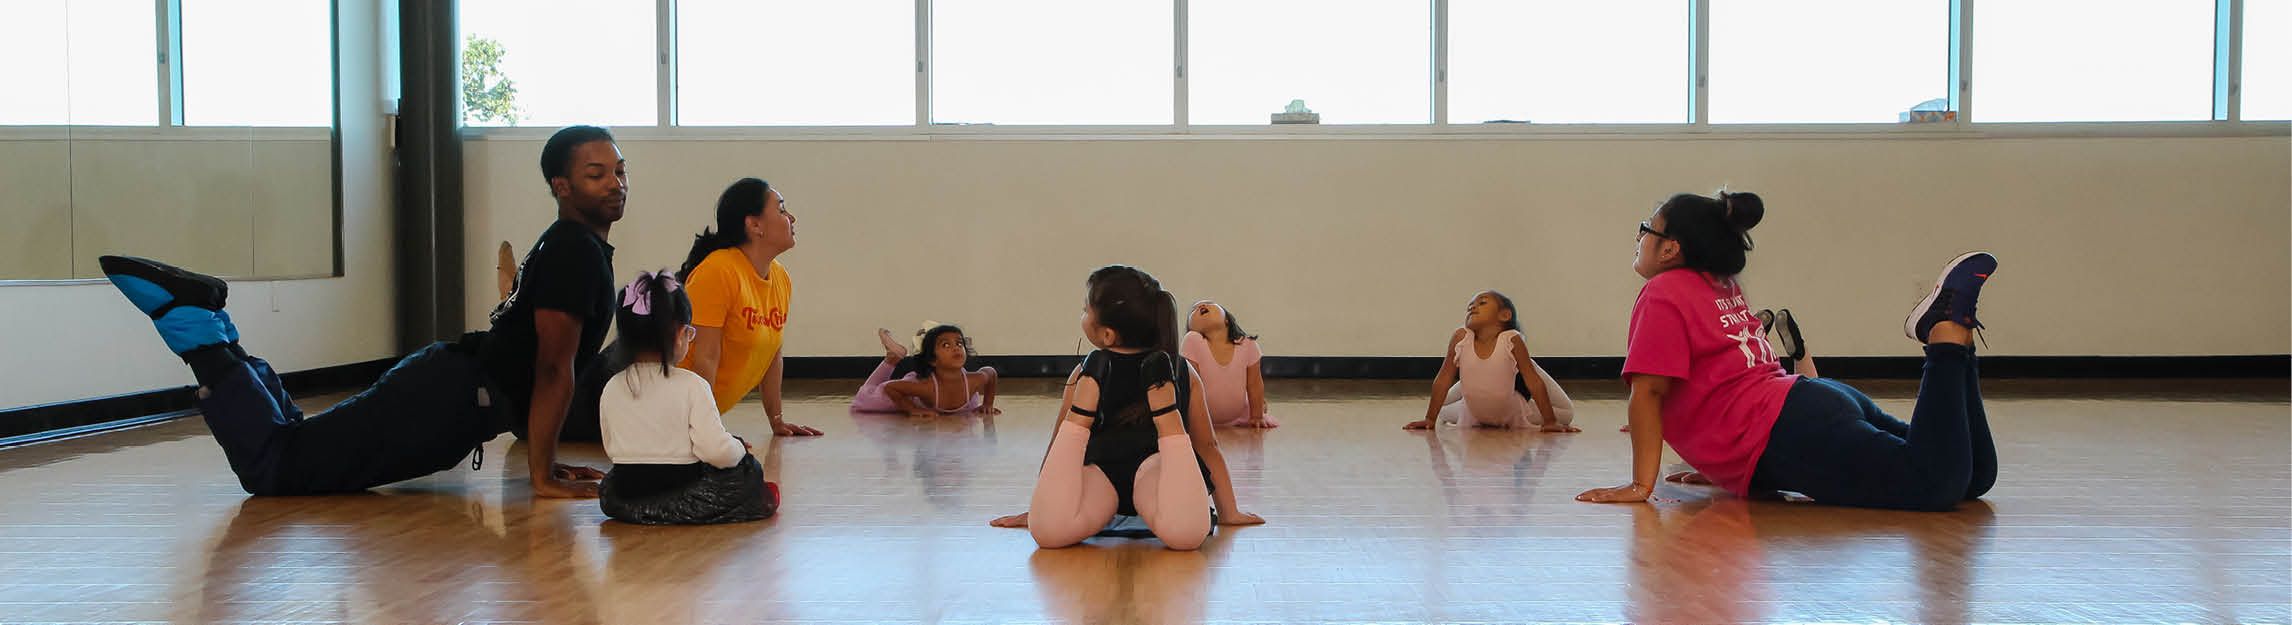 Youth Ballet participants warming up and stretching in a circle